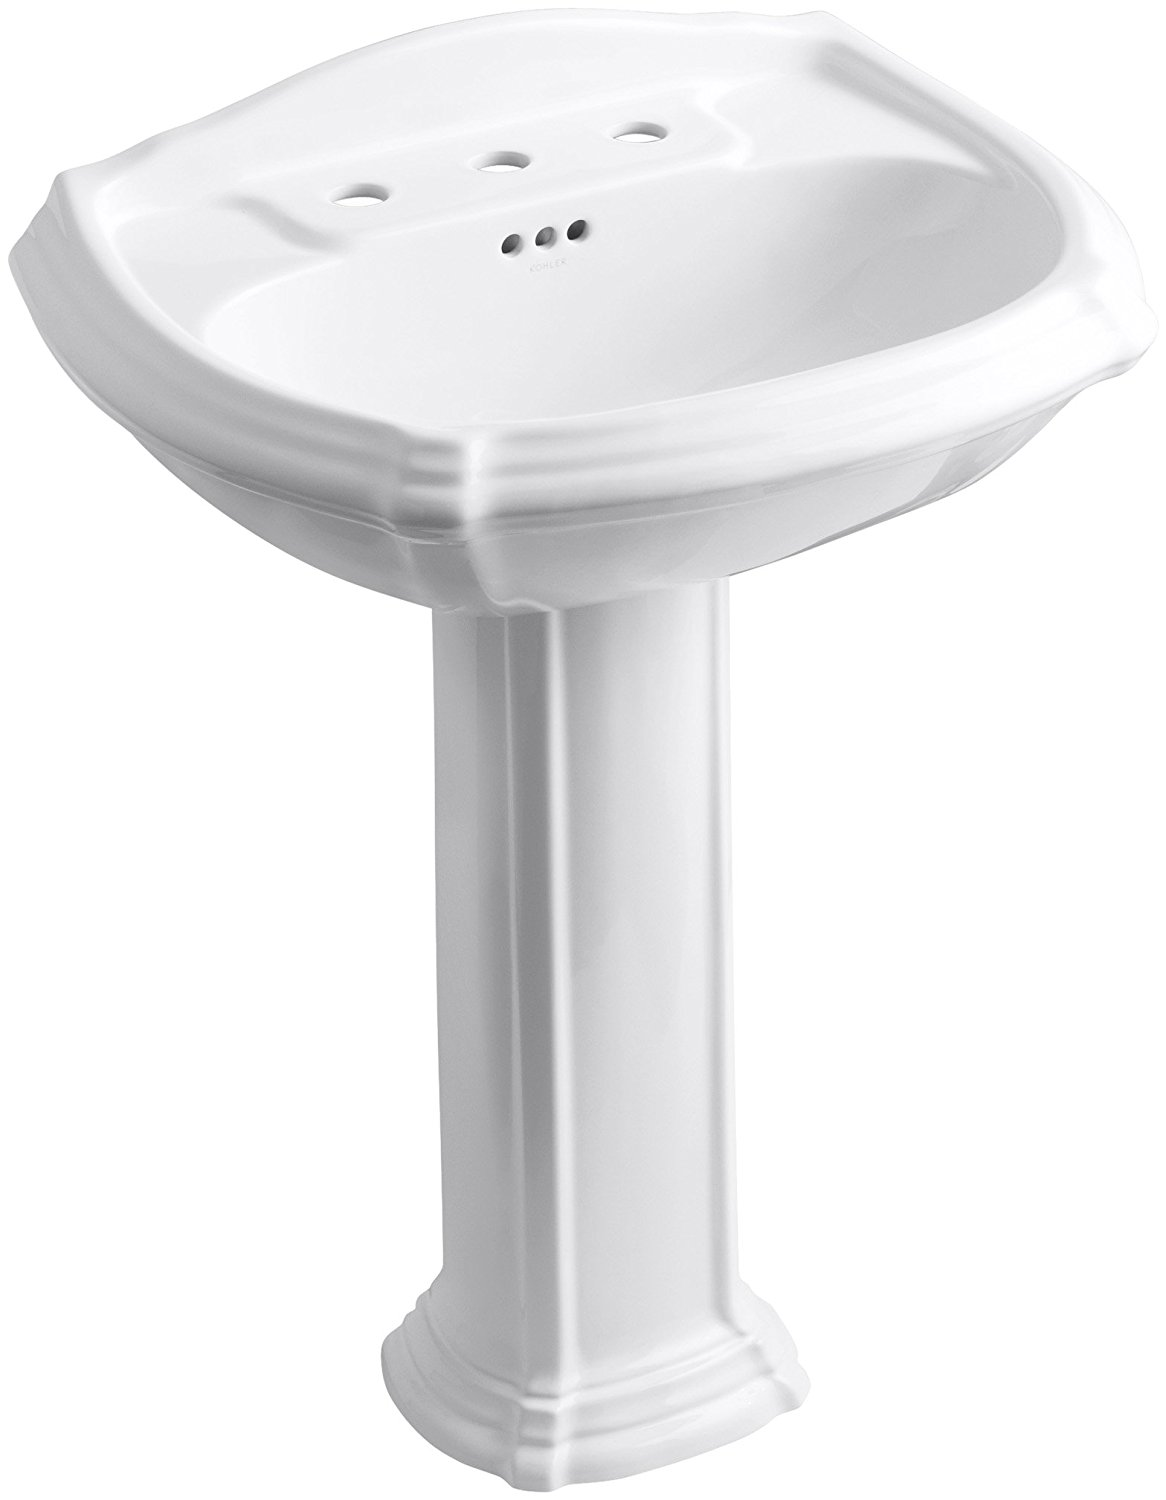 KOHLER K-2221-8-0 Portrait Pedestal Bathroom Sink with 8